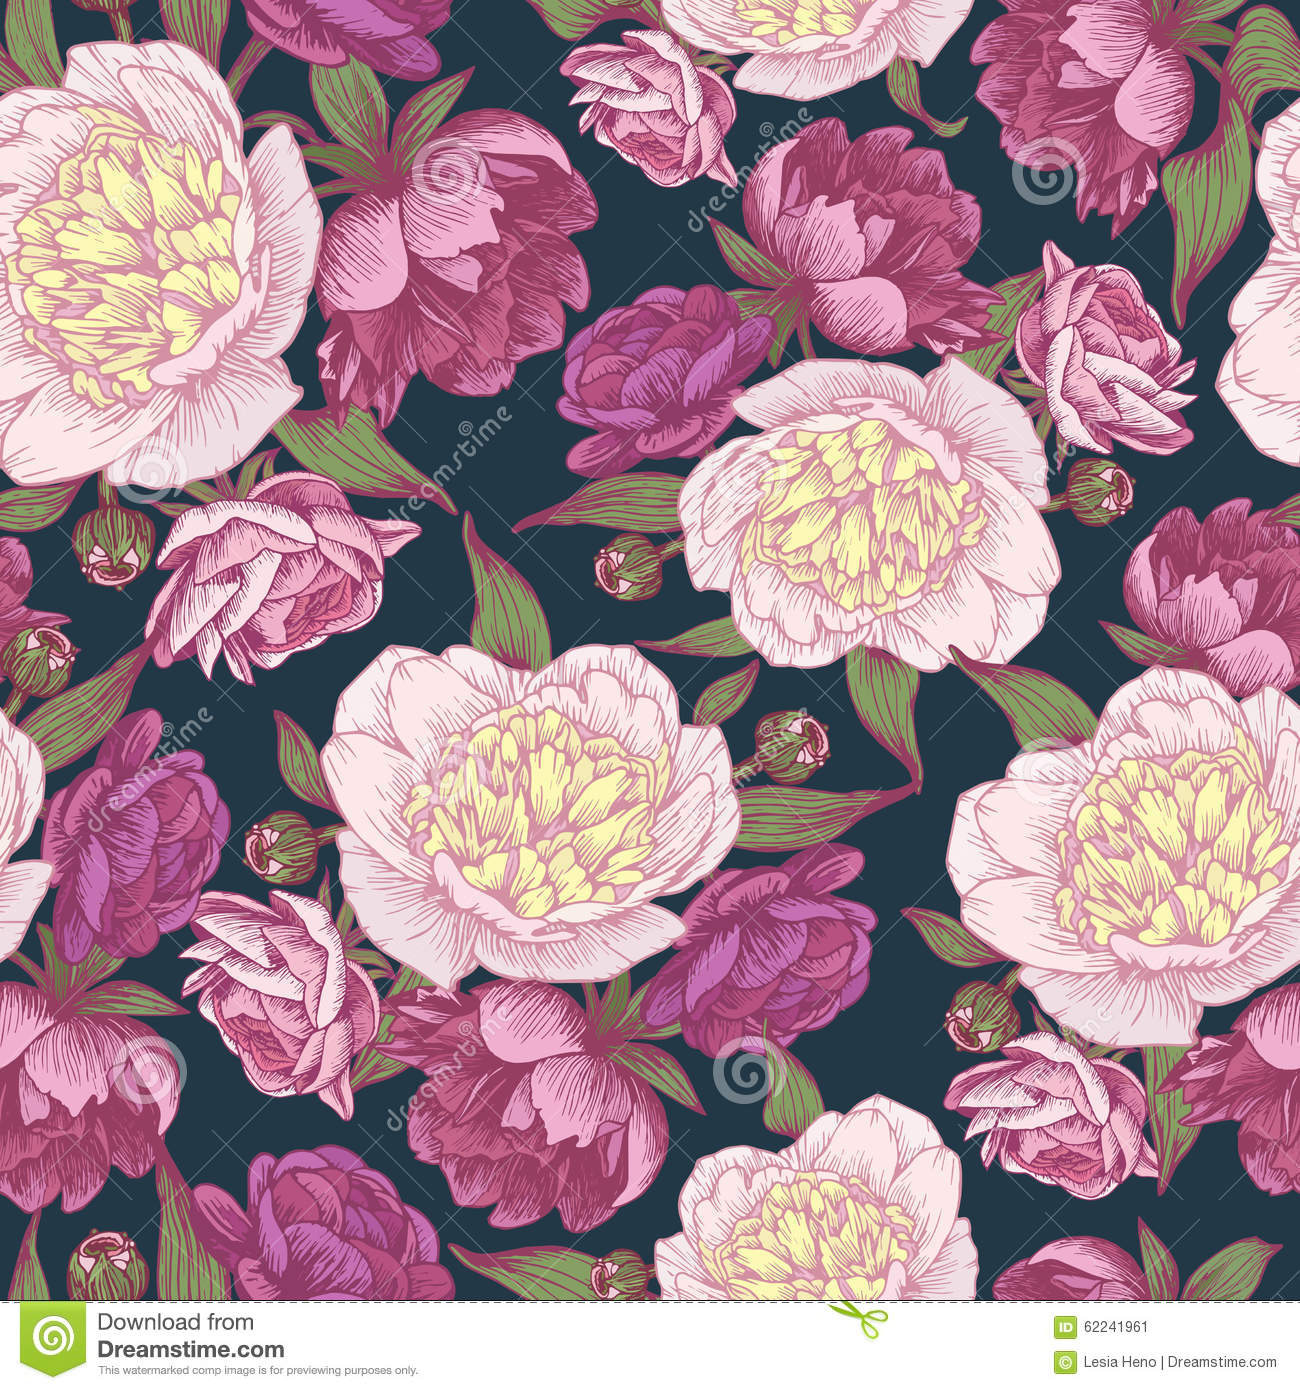 Purple vintage floral pattern - photo#14